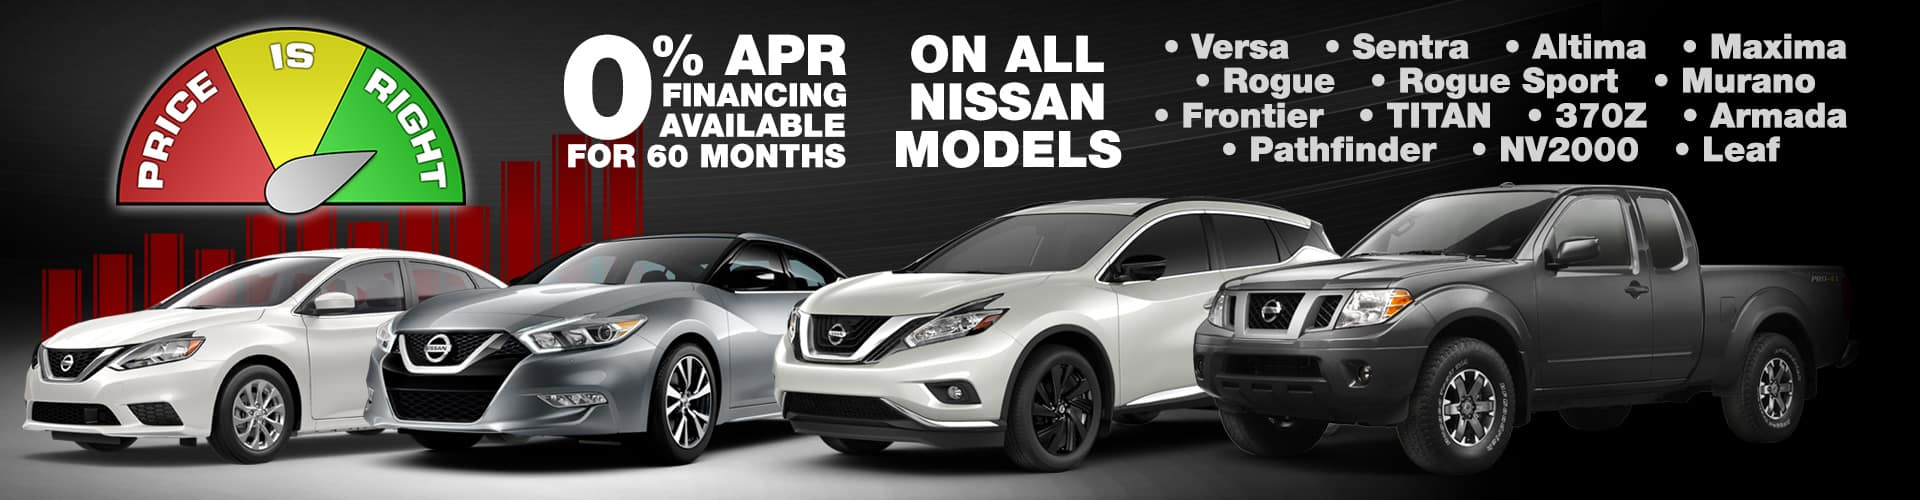 Price Is Right Sales Event   Lease Specials